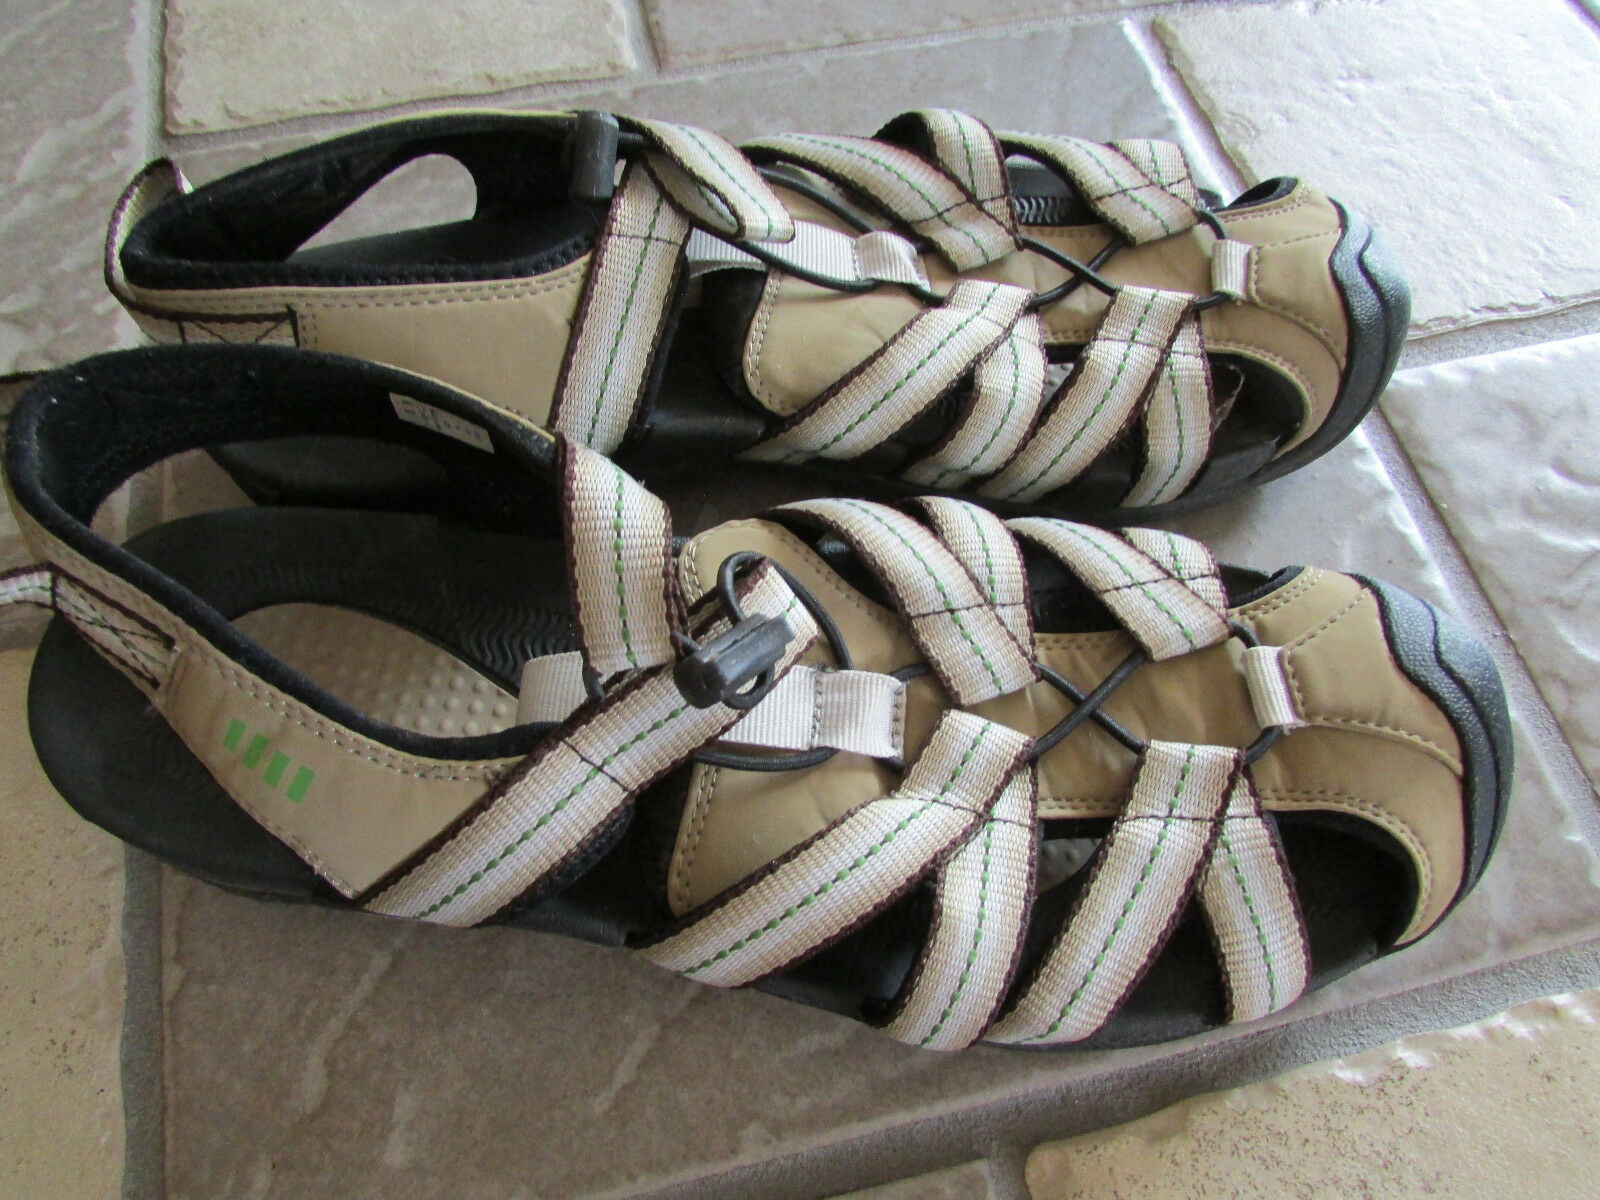 LANDS' END CLOSED TOE SANDALS WOMENS 11  SPORT SANDALS FREE SHIP